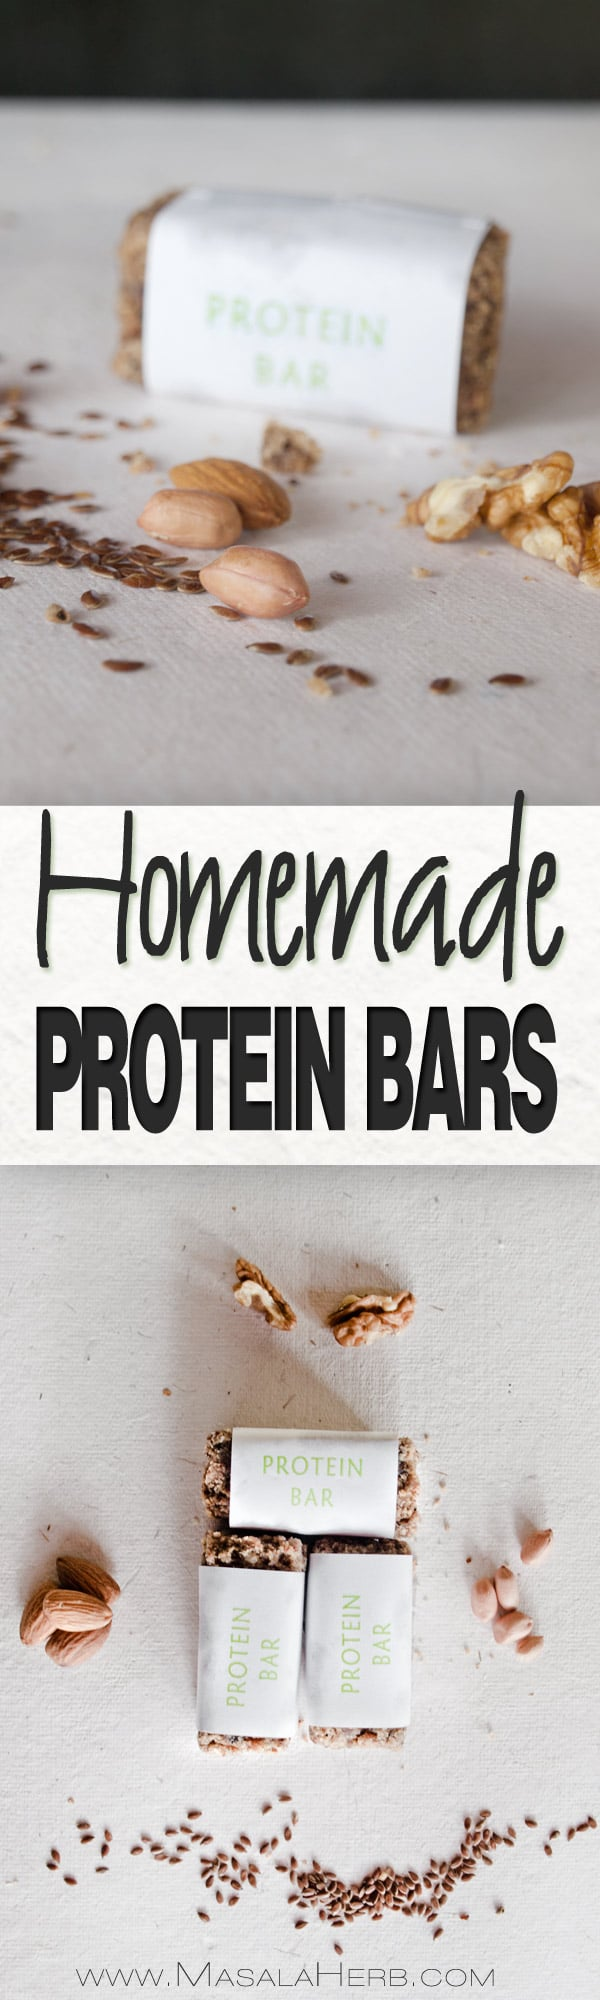 Homemade Protein Bars Recipe [without protein powder, Gluten free, Organic] you can make them vegan too with vegan milk powder. perfect portable homemade protein bars for after workout to give a power boost or as a study snack. You know hat's in your protein bars! www.MasalaHerb.com #proteinbars #healthy #homemade